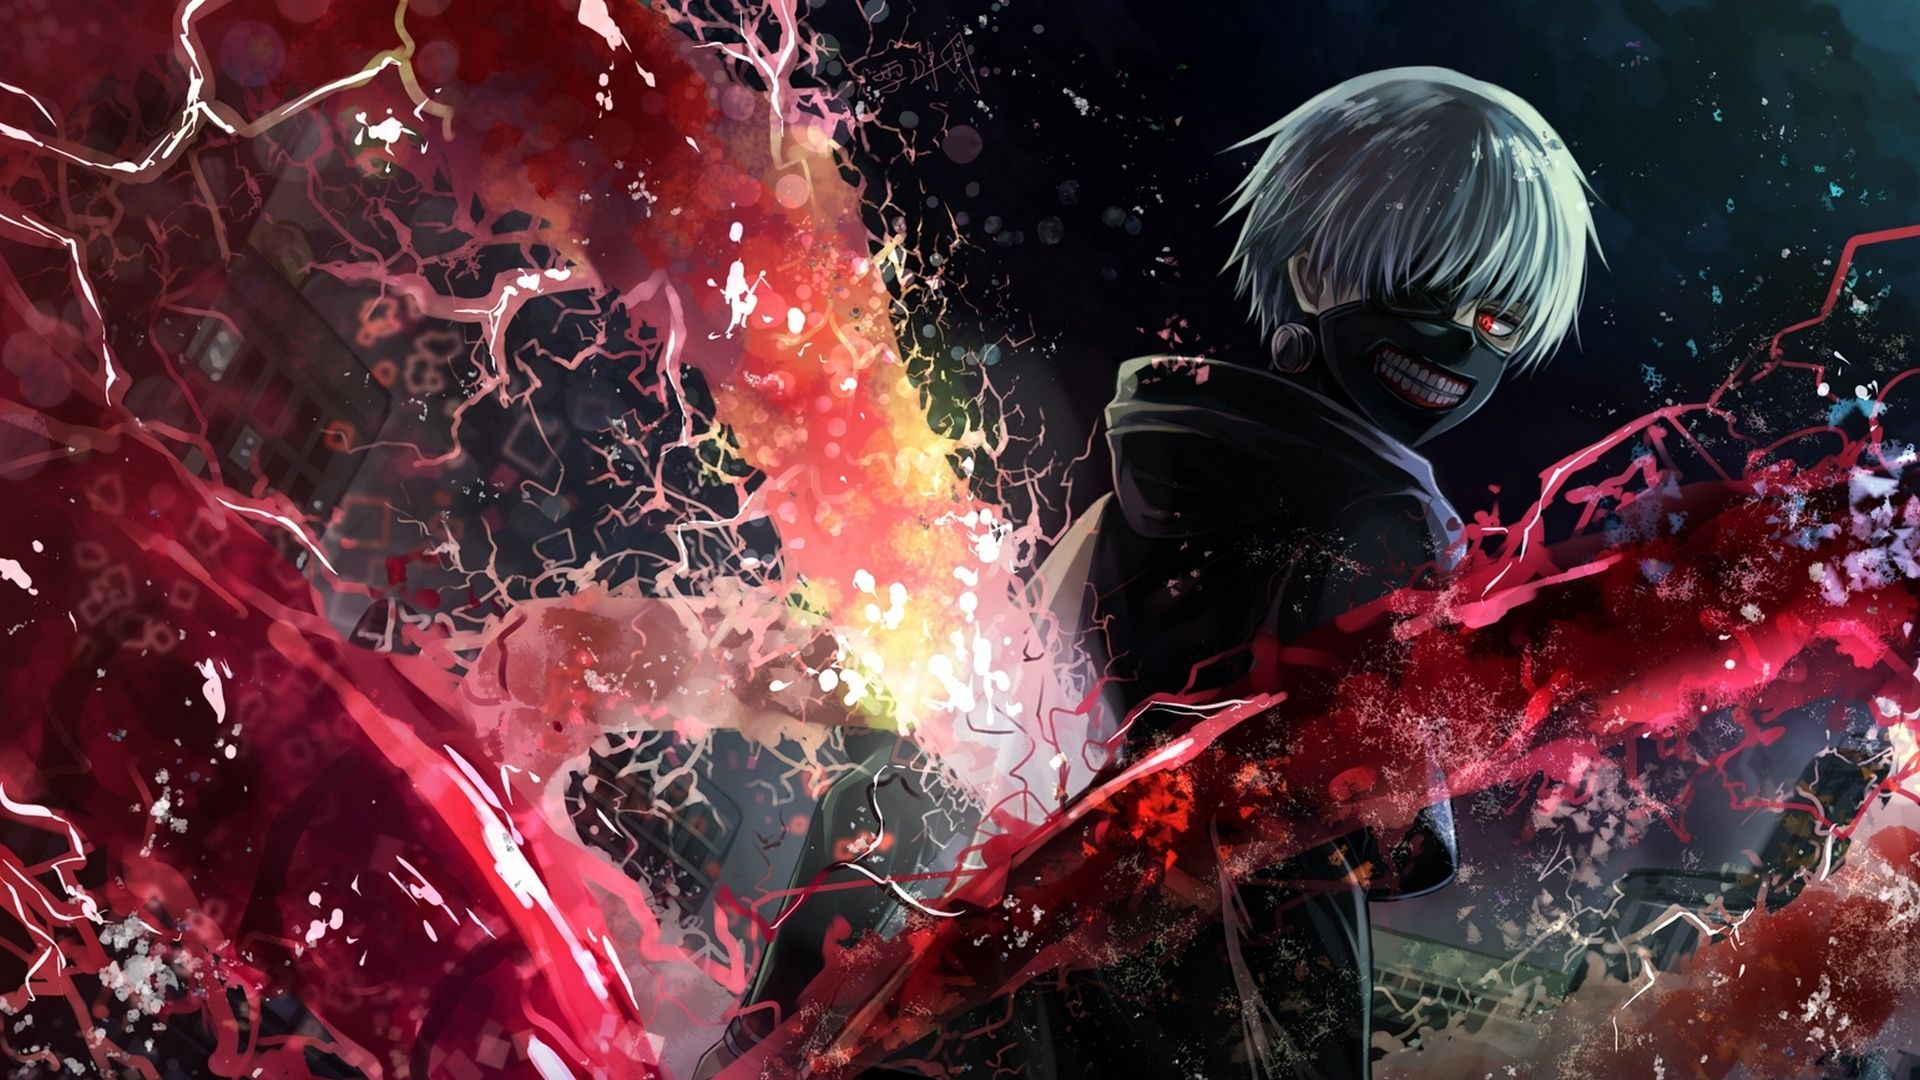 Free desktop wallpapers anime wallpapers wide anime hdq - Wallpaper computer anime ...